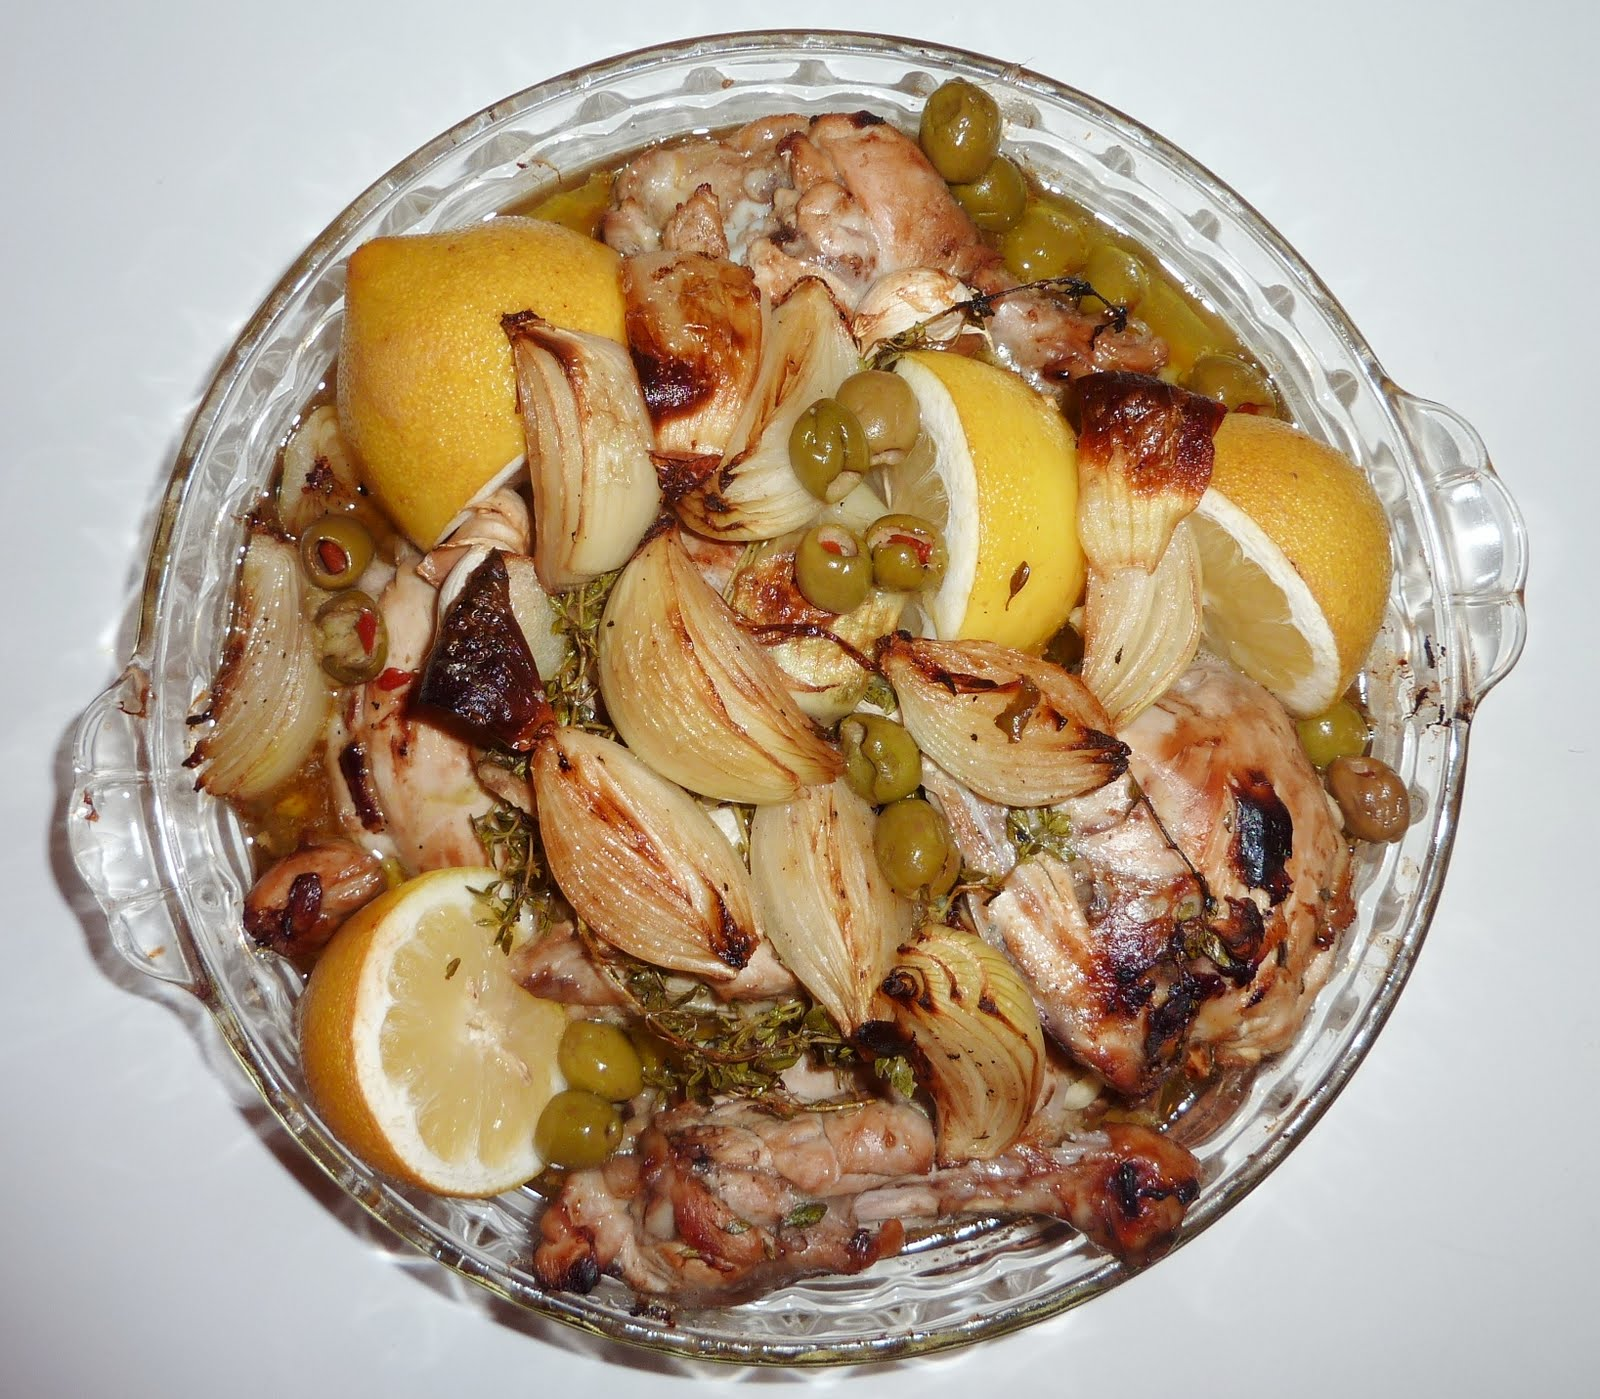 My Personal Food Journal: Fragrant Baked Lemon Olive Chicken